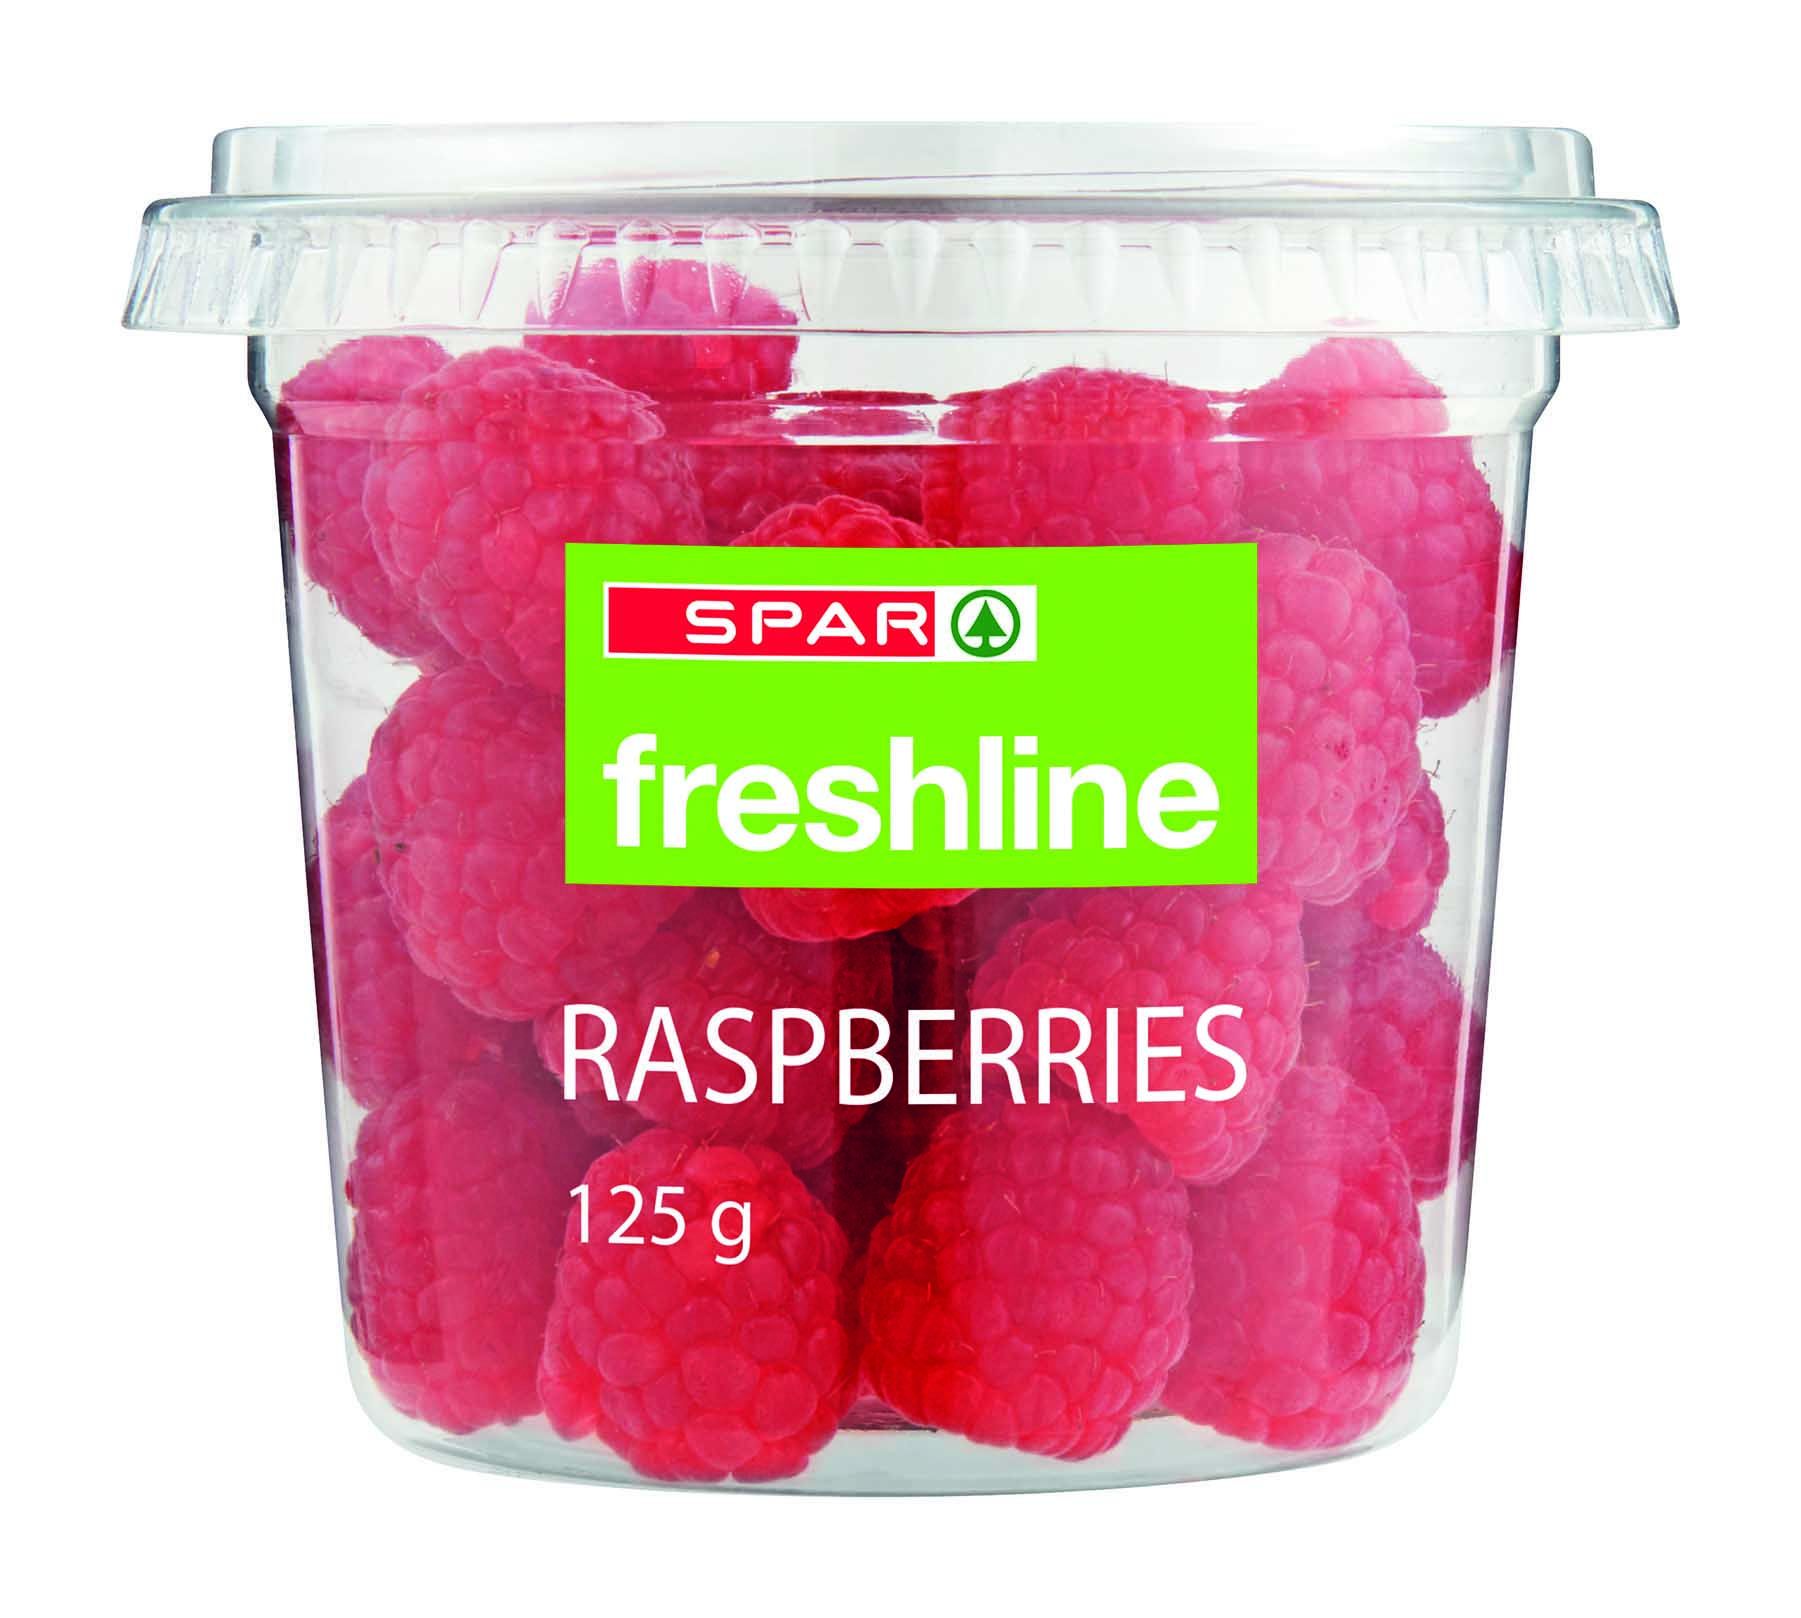 freshline raspberries